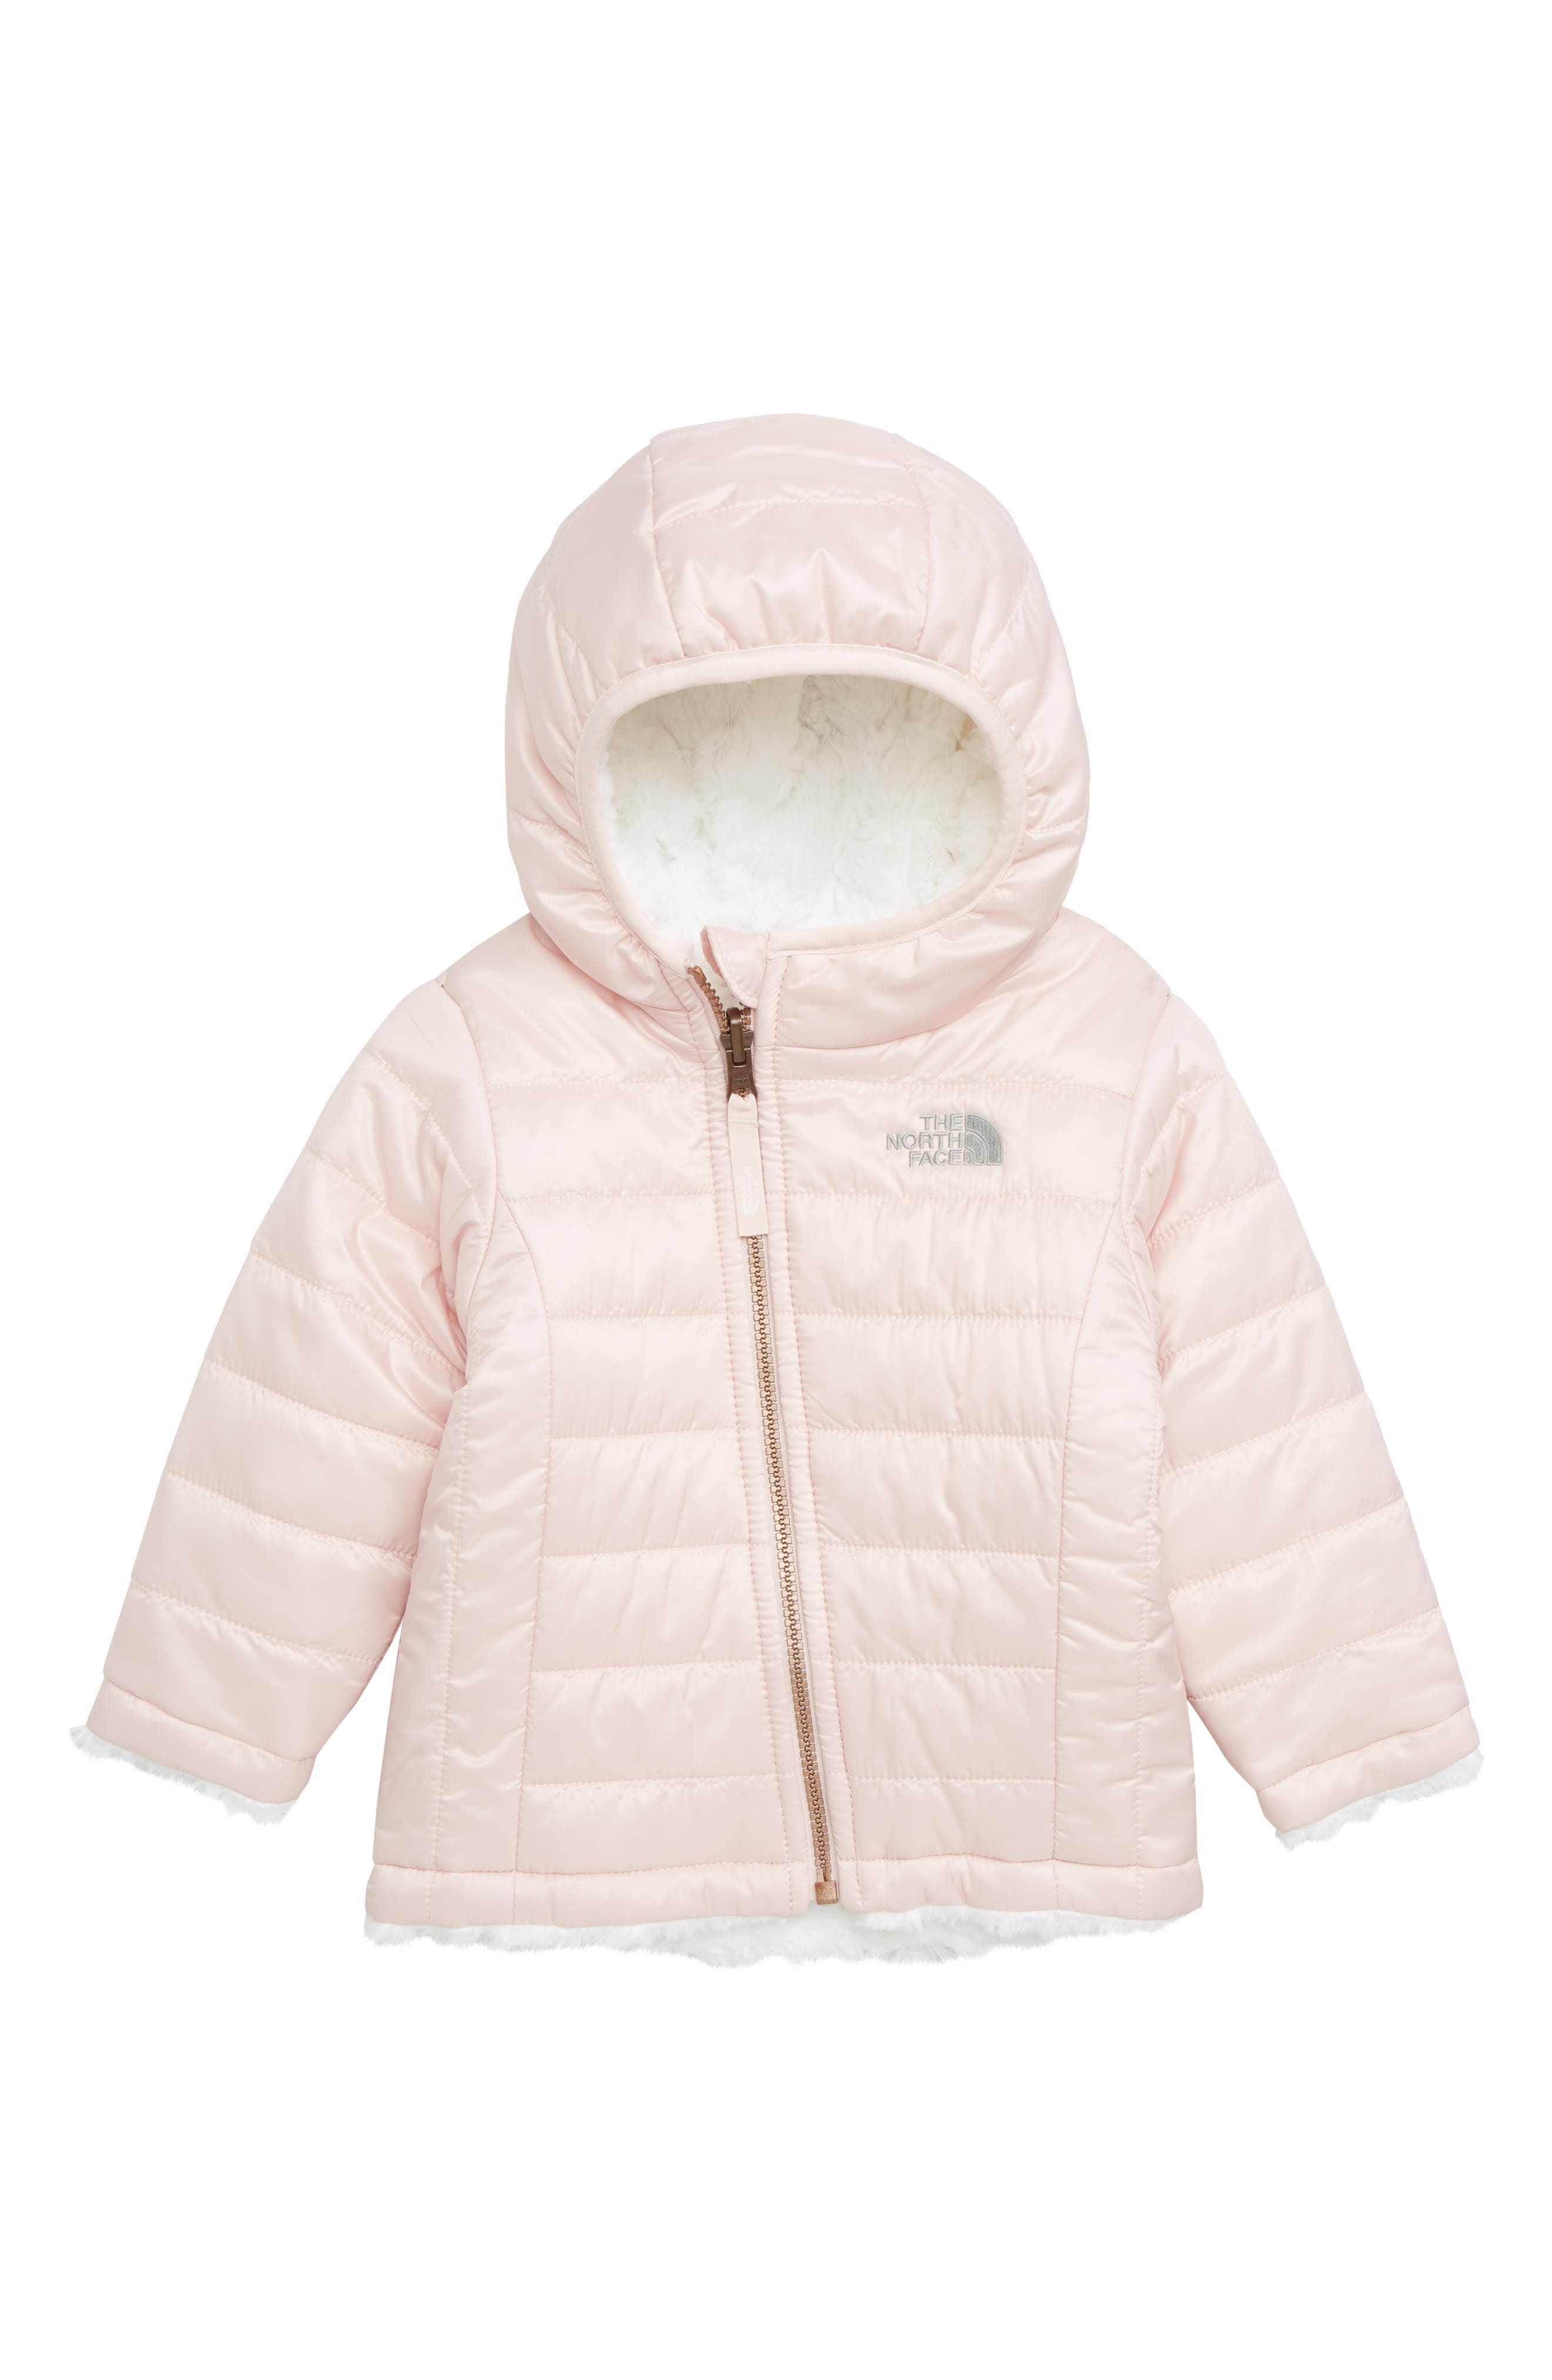 Mossbud Swirl Reversible Water Repellent Jacket,                         Main,                         color, PURDY PINK